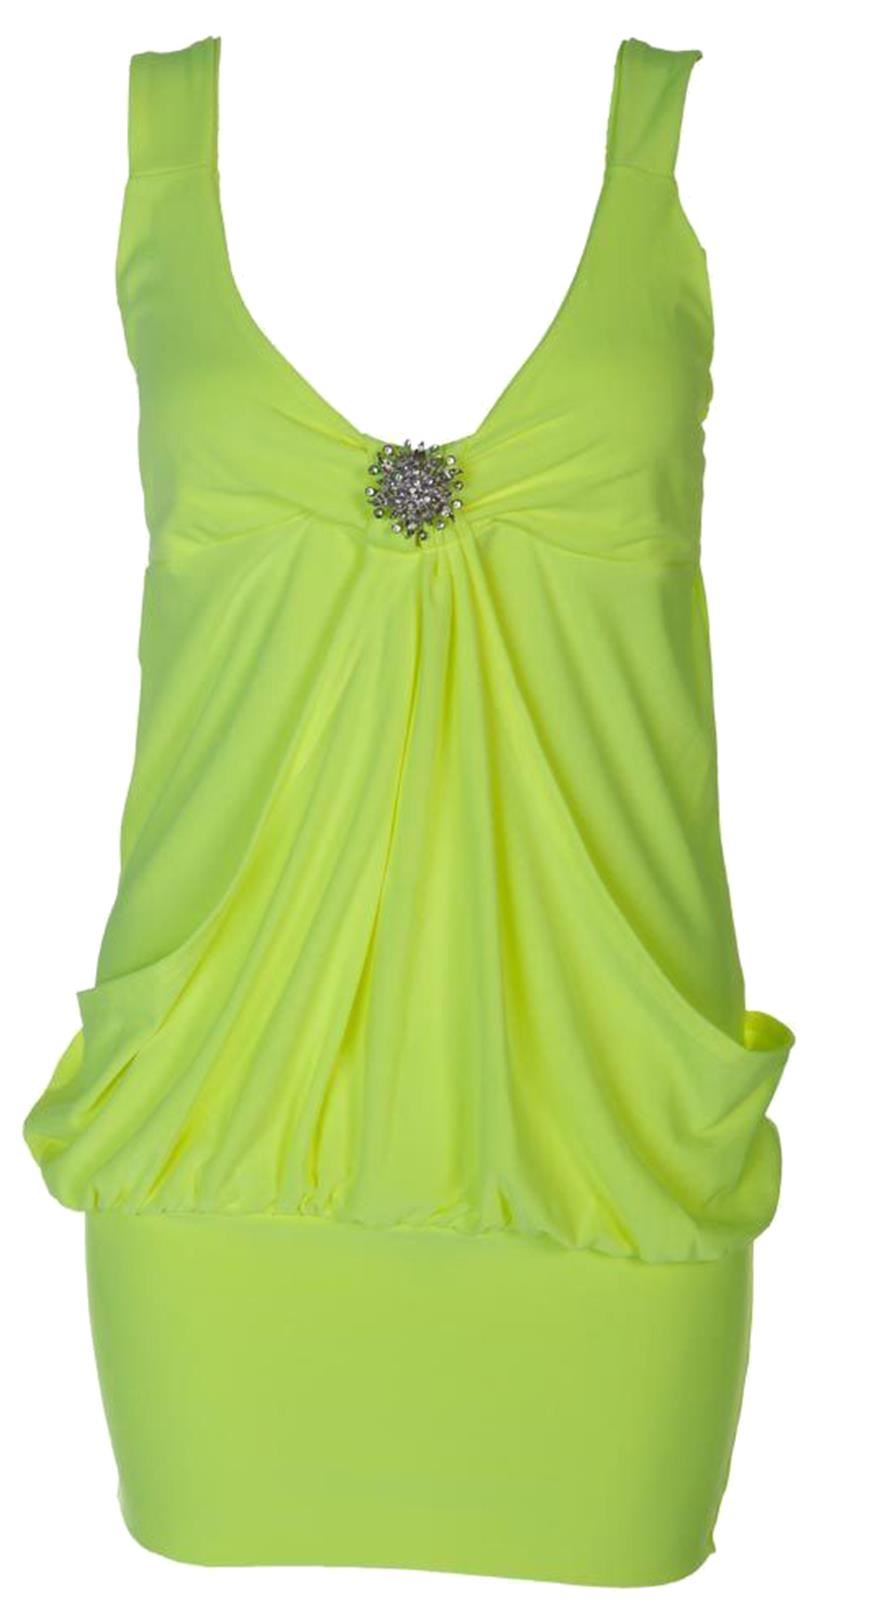 Neon Colored Plus Size Clothing New Ladies Neon Plain Colored Mini Broche Dress 8-22 | Ebay